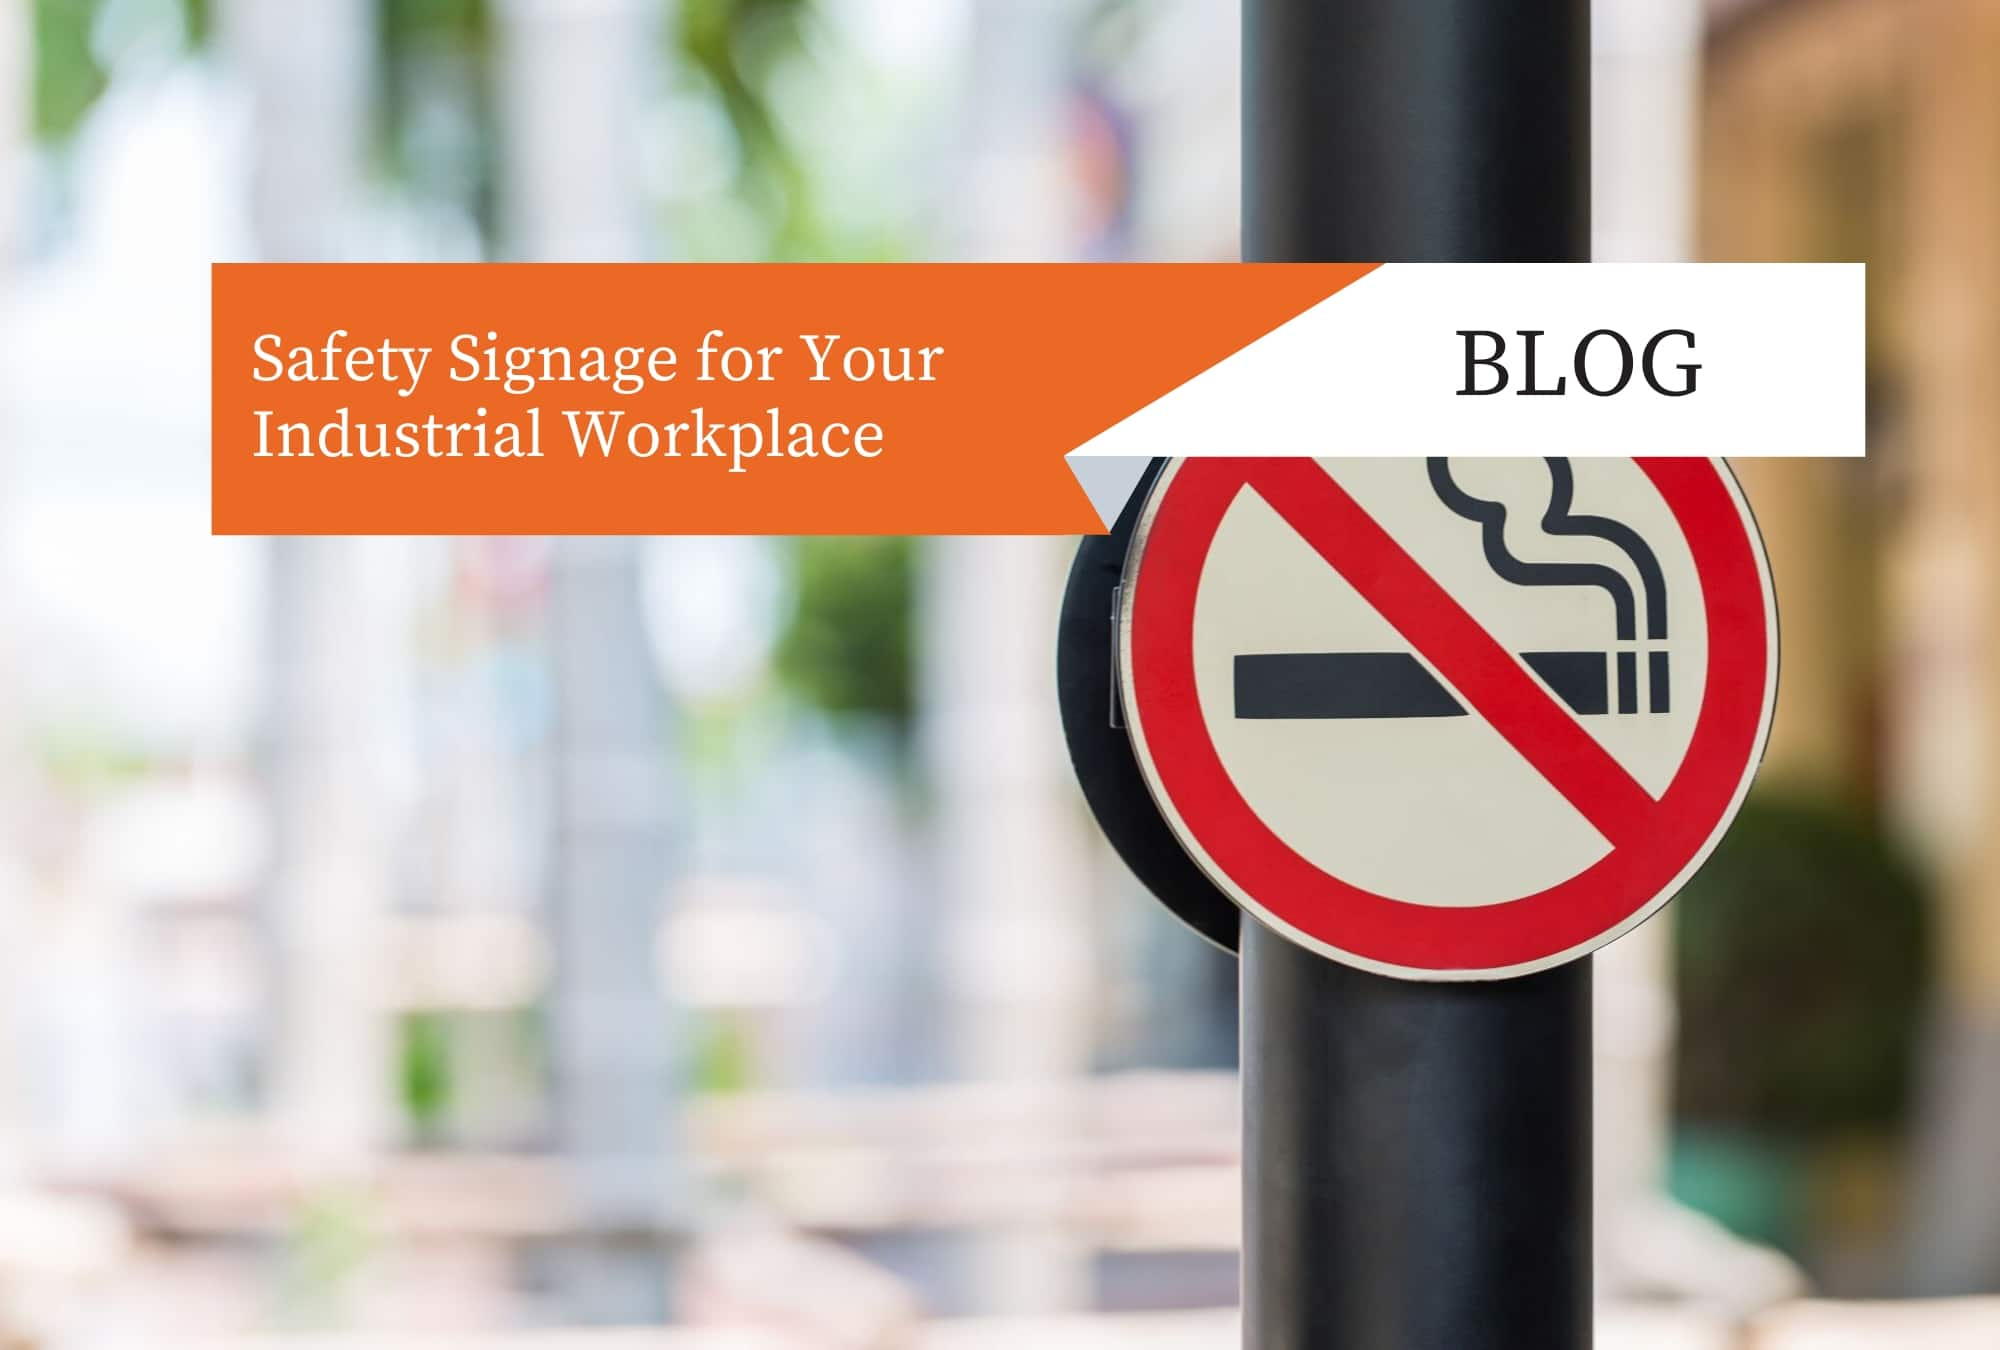 Safety Signage for Your Industrial Workplace